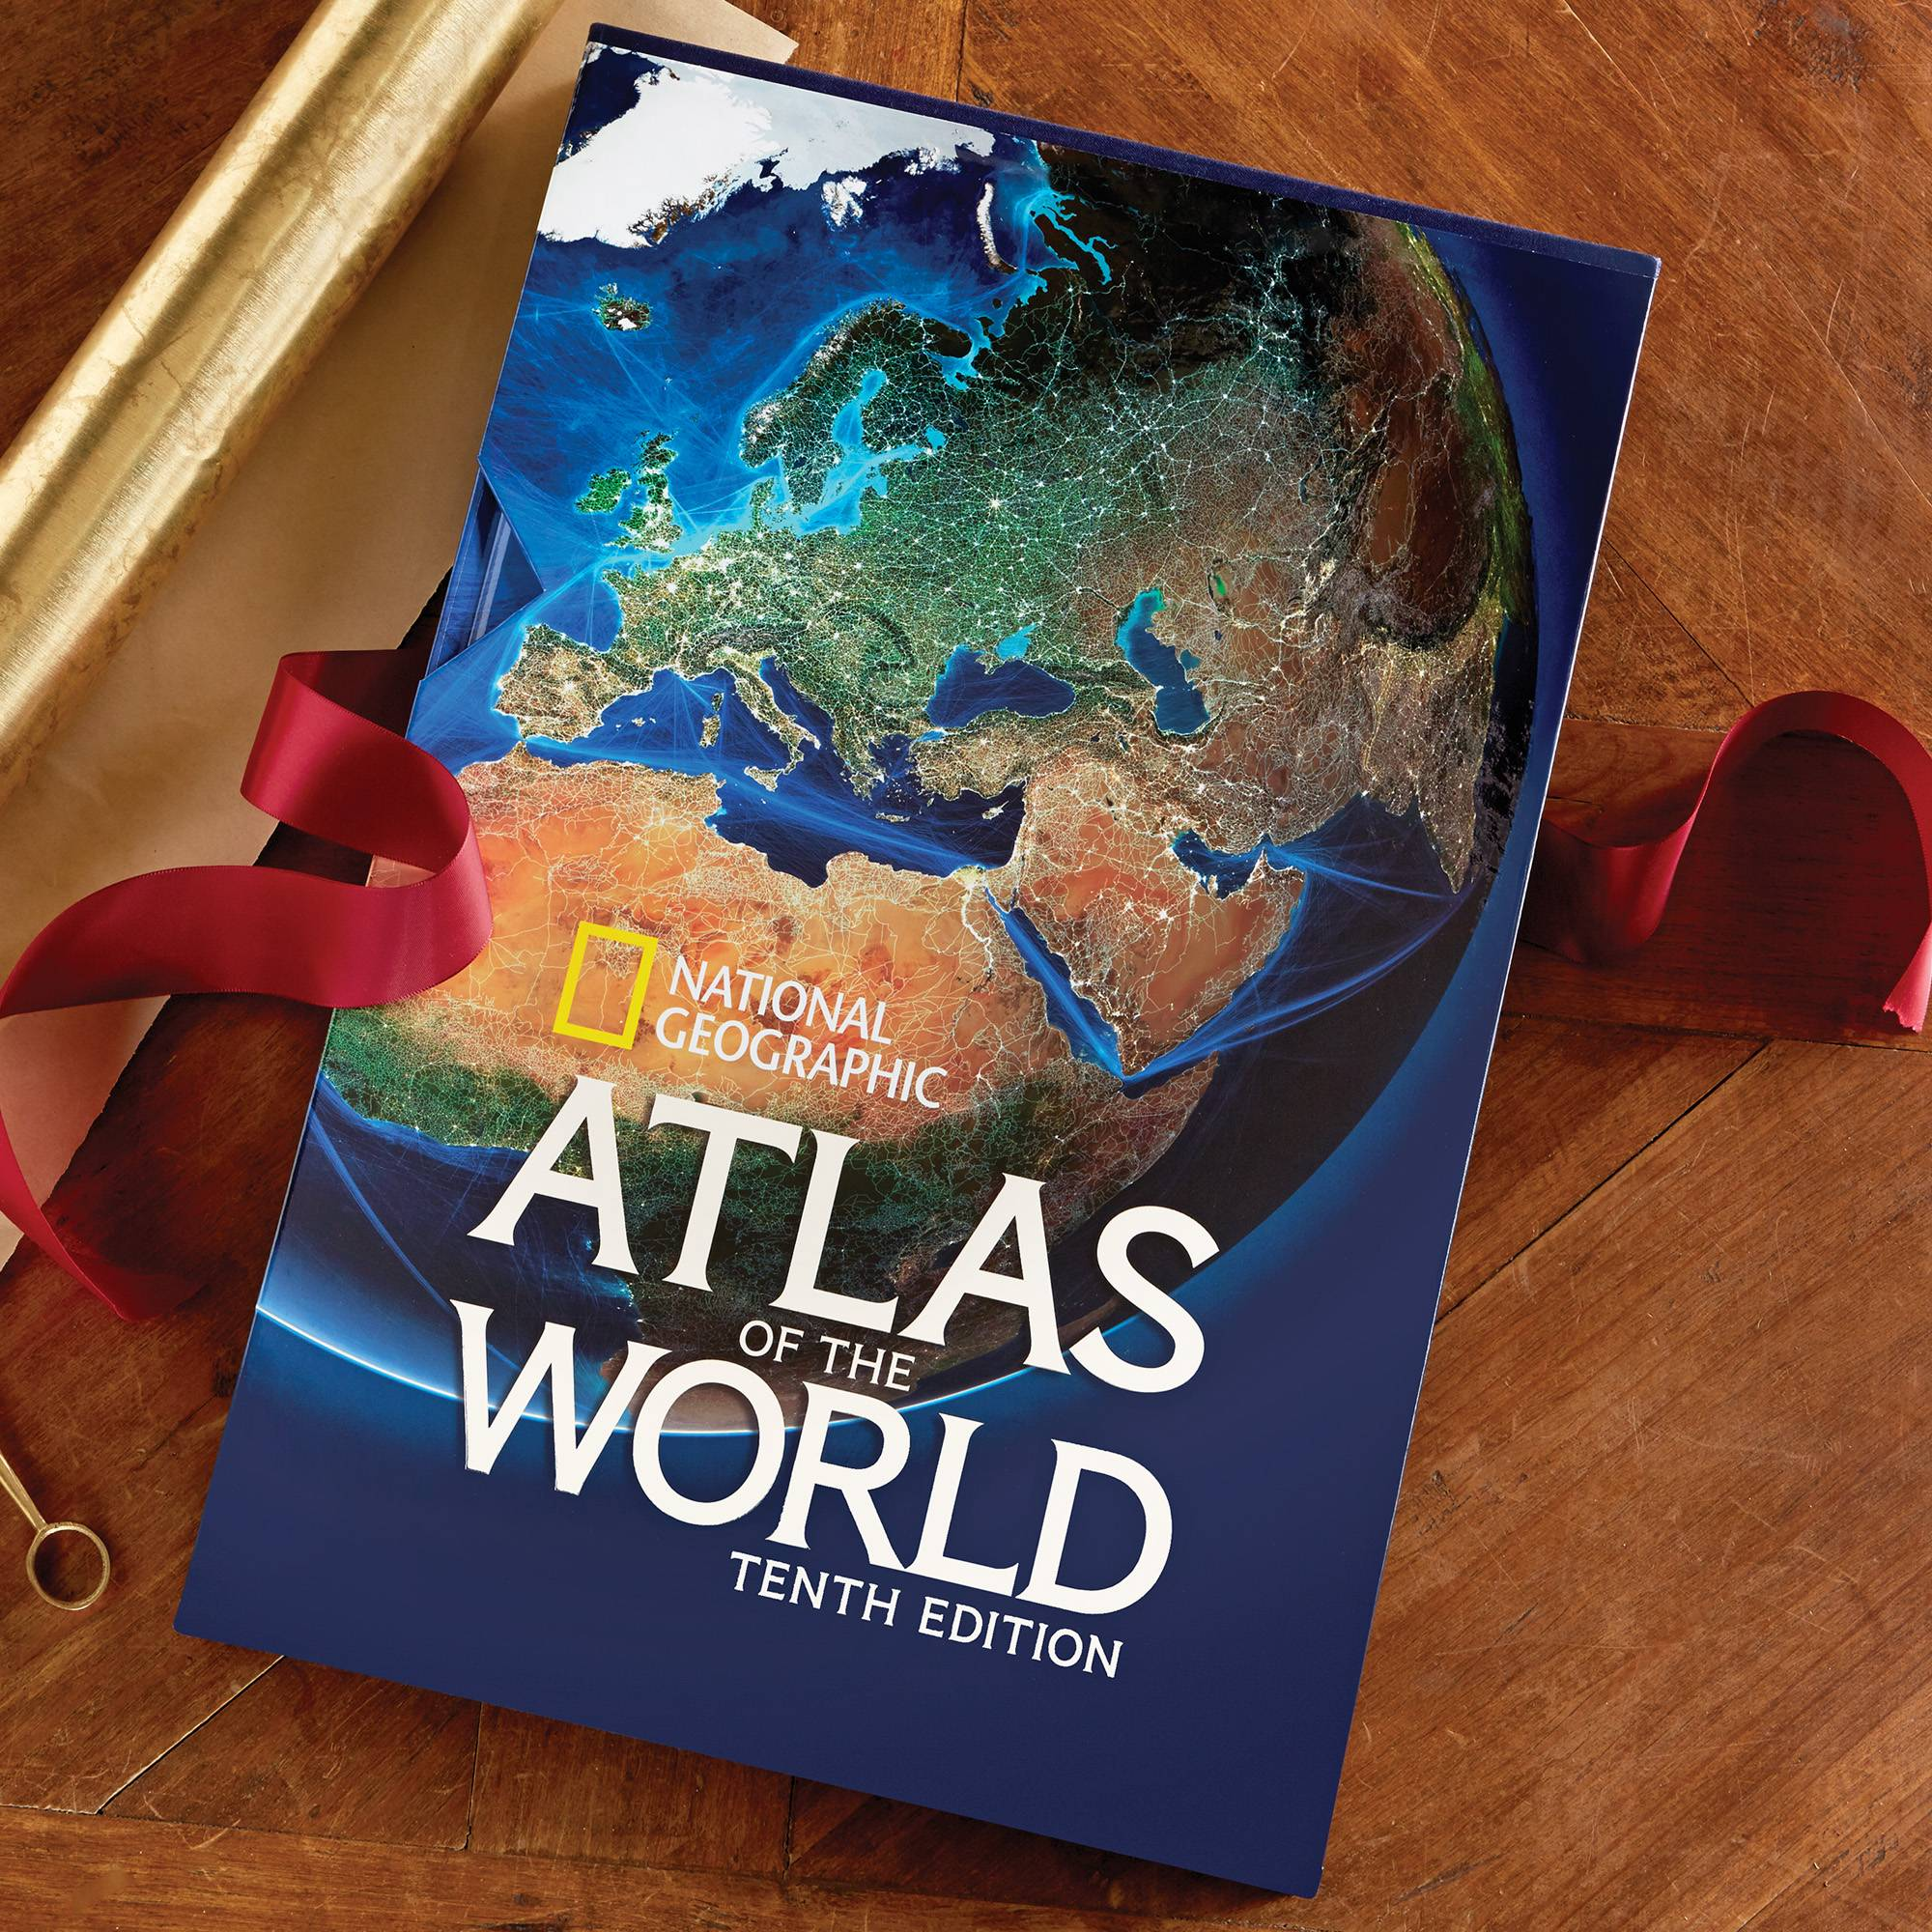 National geographic tenth edition atlas with slipcase atlas of the national geographic tenth edition atlas with slipcase atlas of the world 10th ed novica gumiabroncs Choice Image